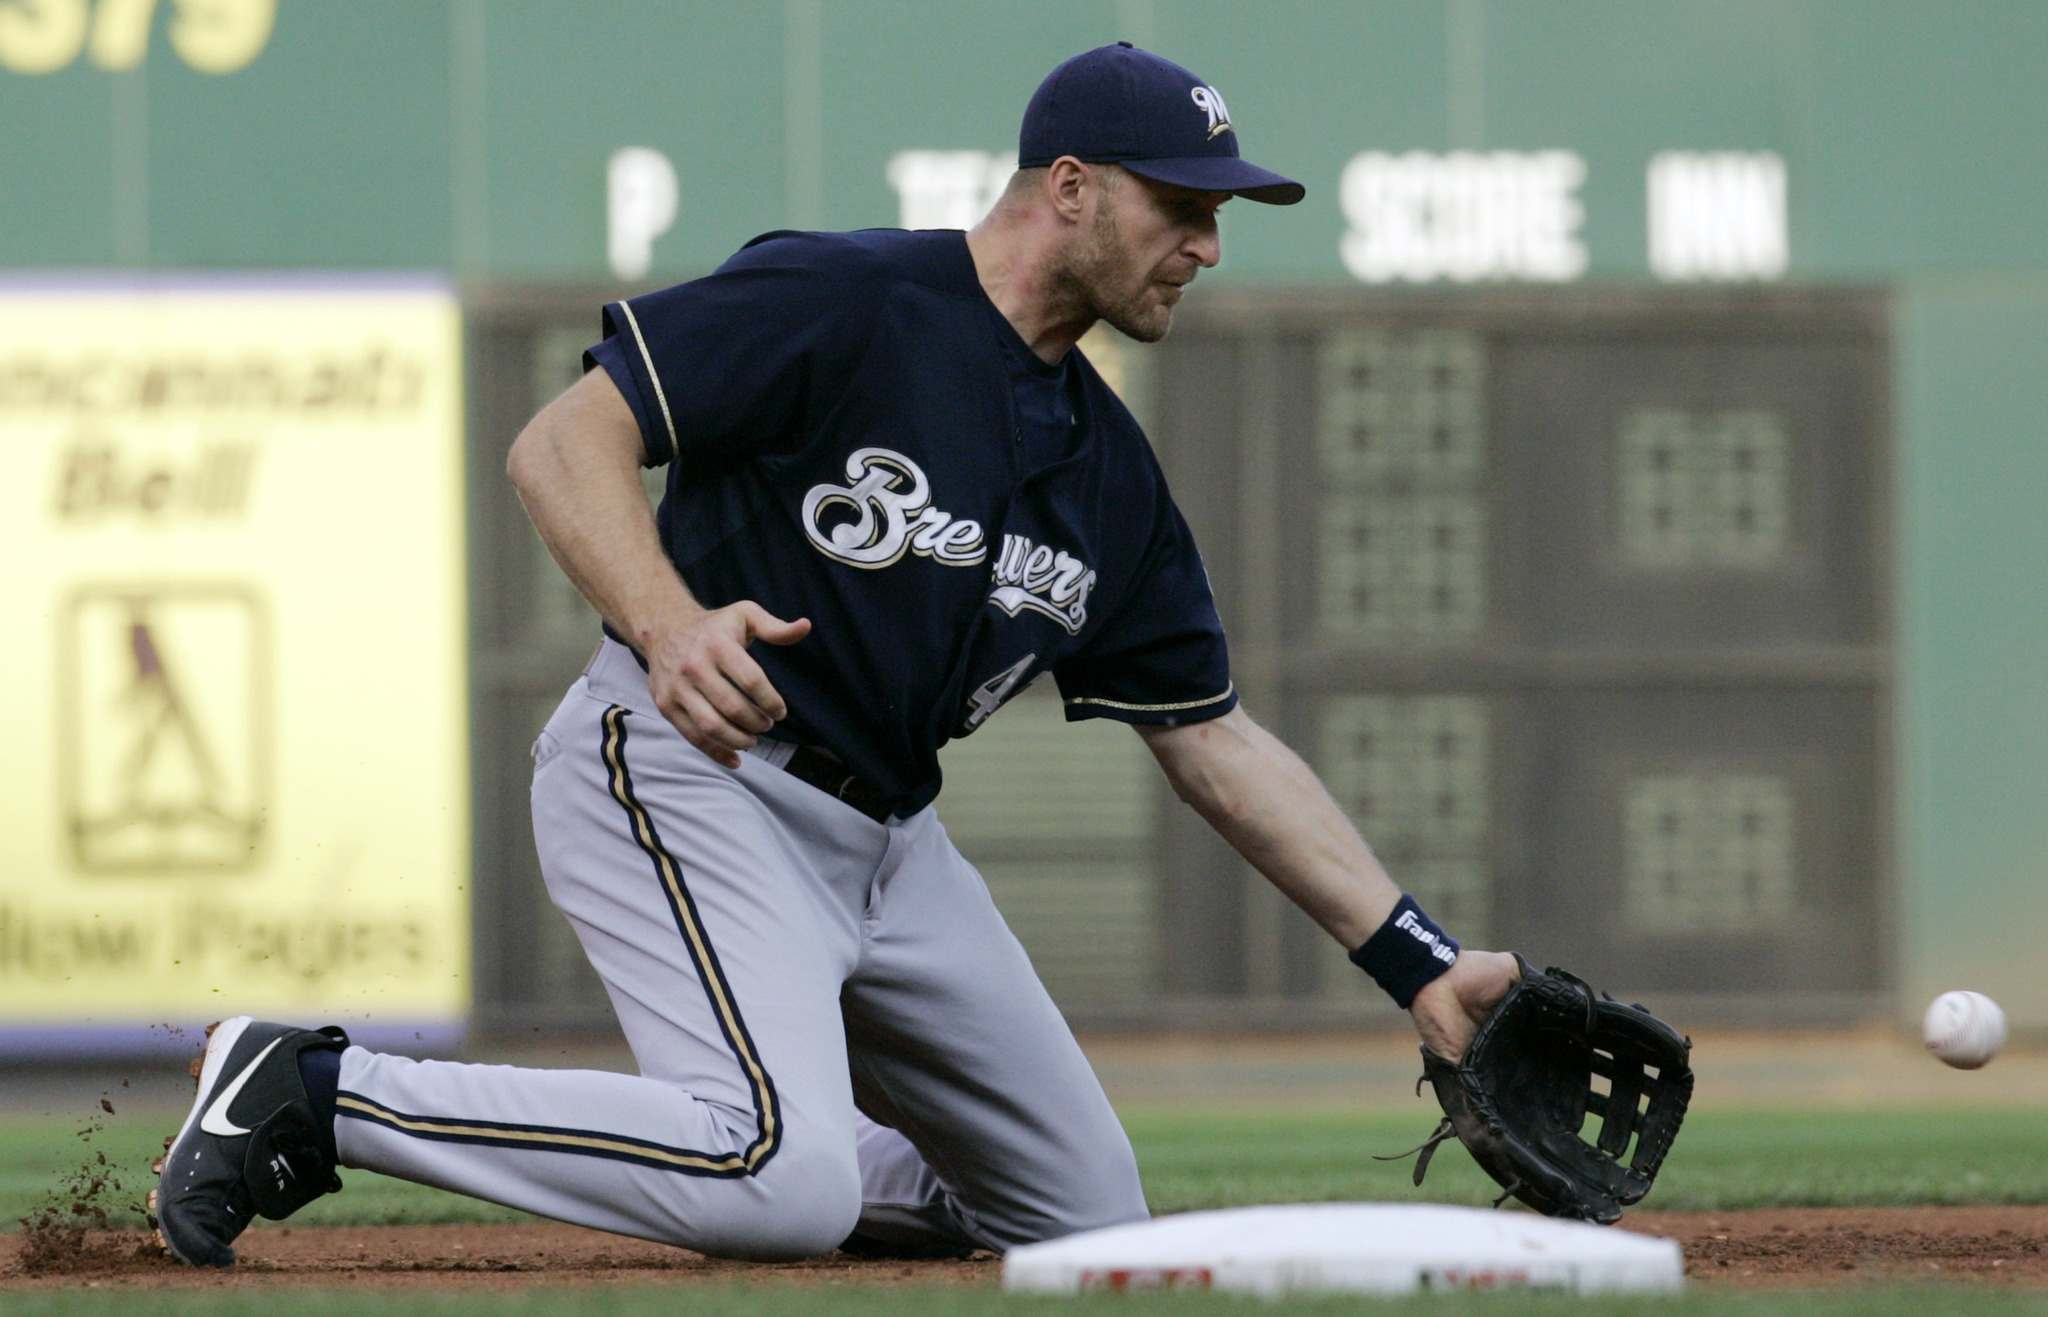 Koskie played with the Milwaukee Brewers in 2006 before suffering a concussion which effectively ended his career. (Al Behrman / Associated Press files)</p>